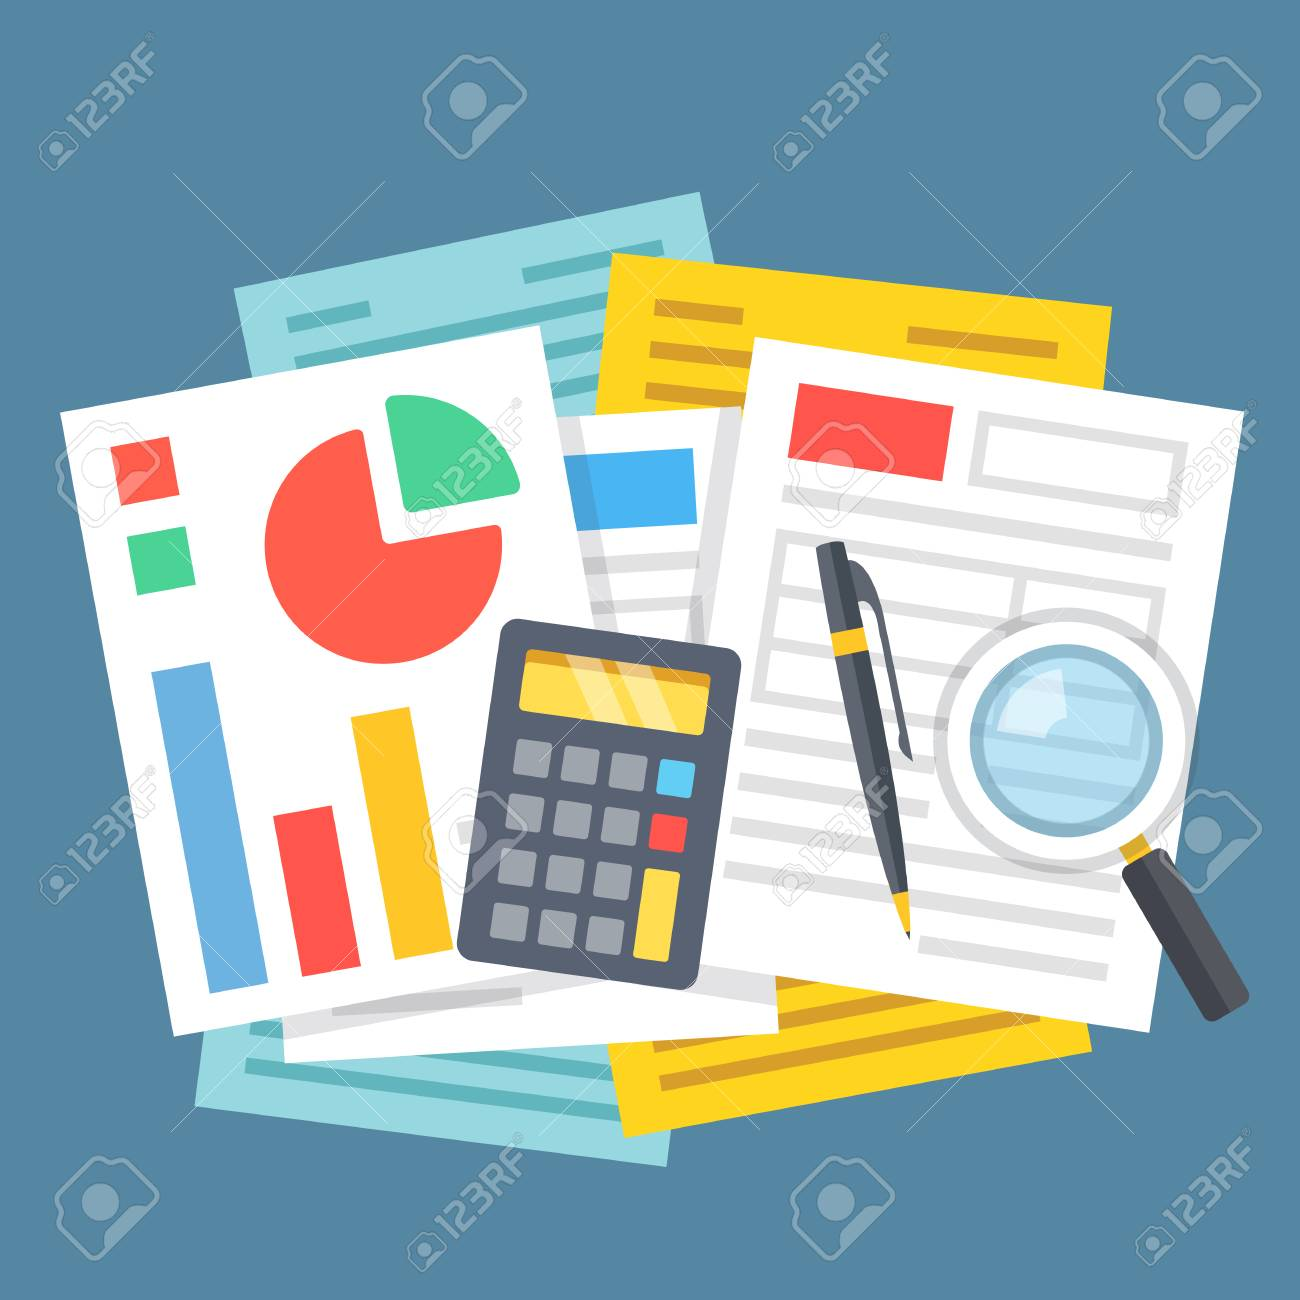 Paperwork Office Work Financial Analysis Accounting Concepts